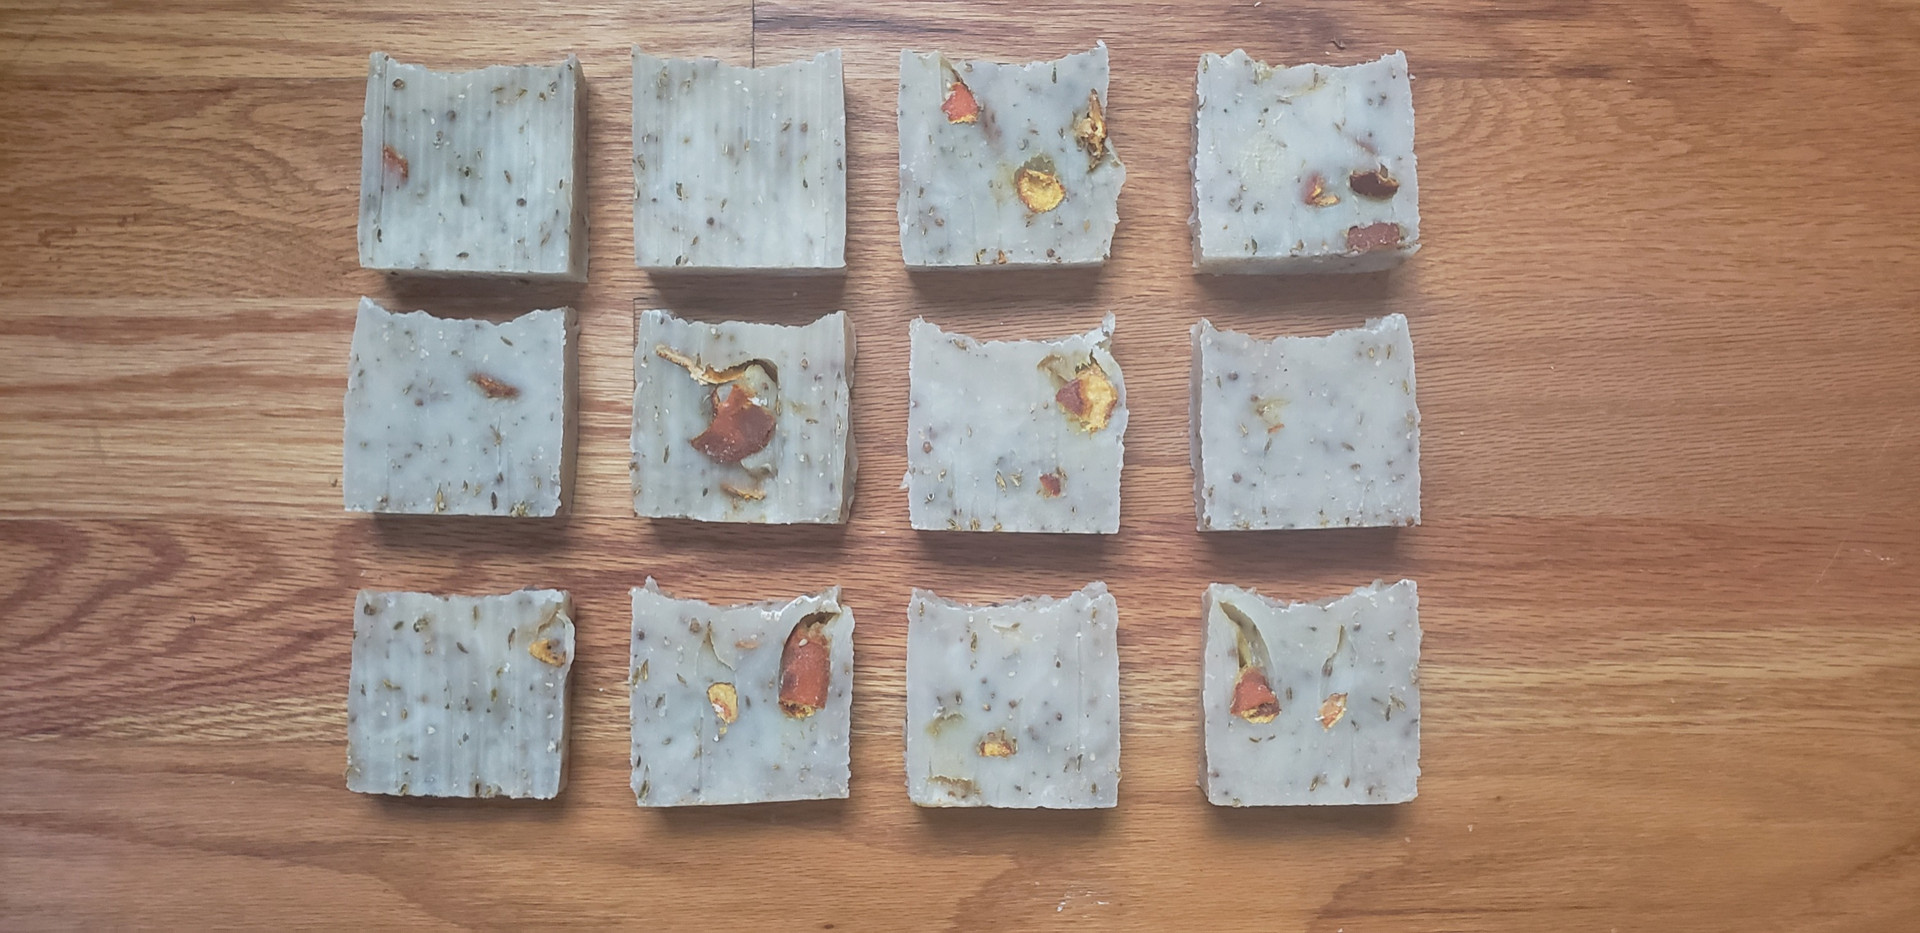 SOAP BATCH 6 - GRAIN